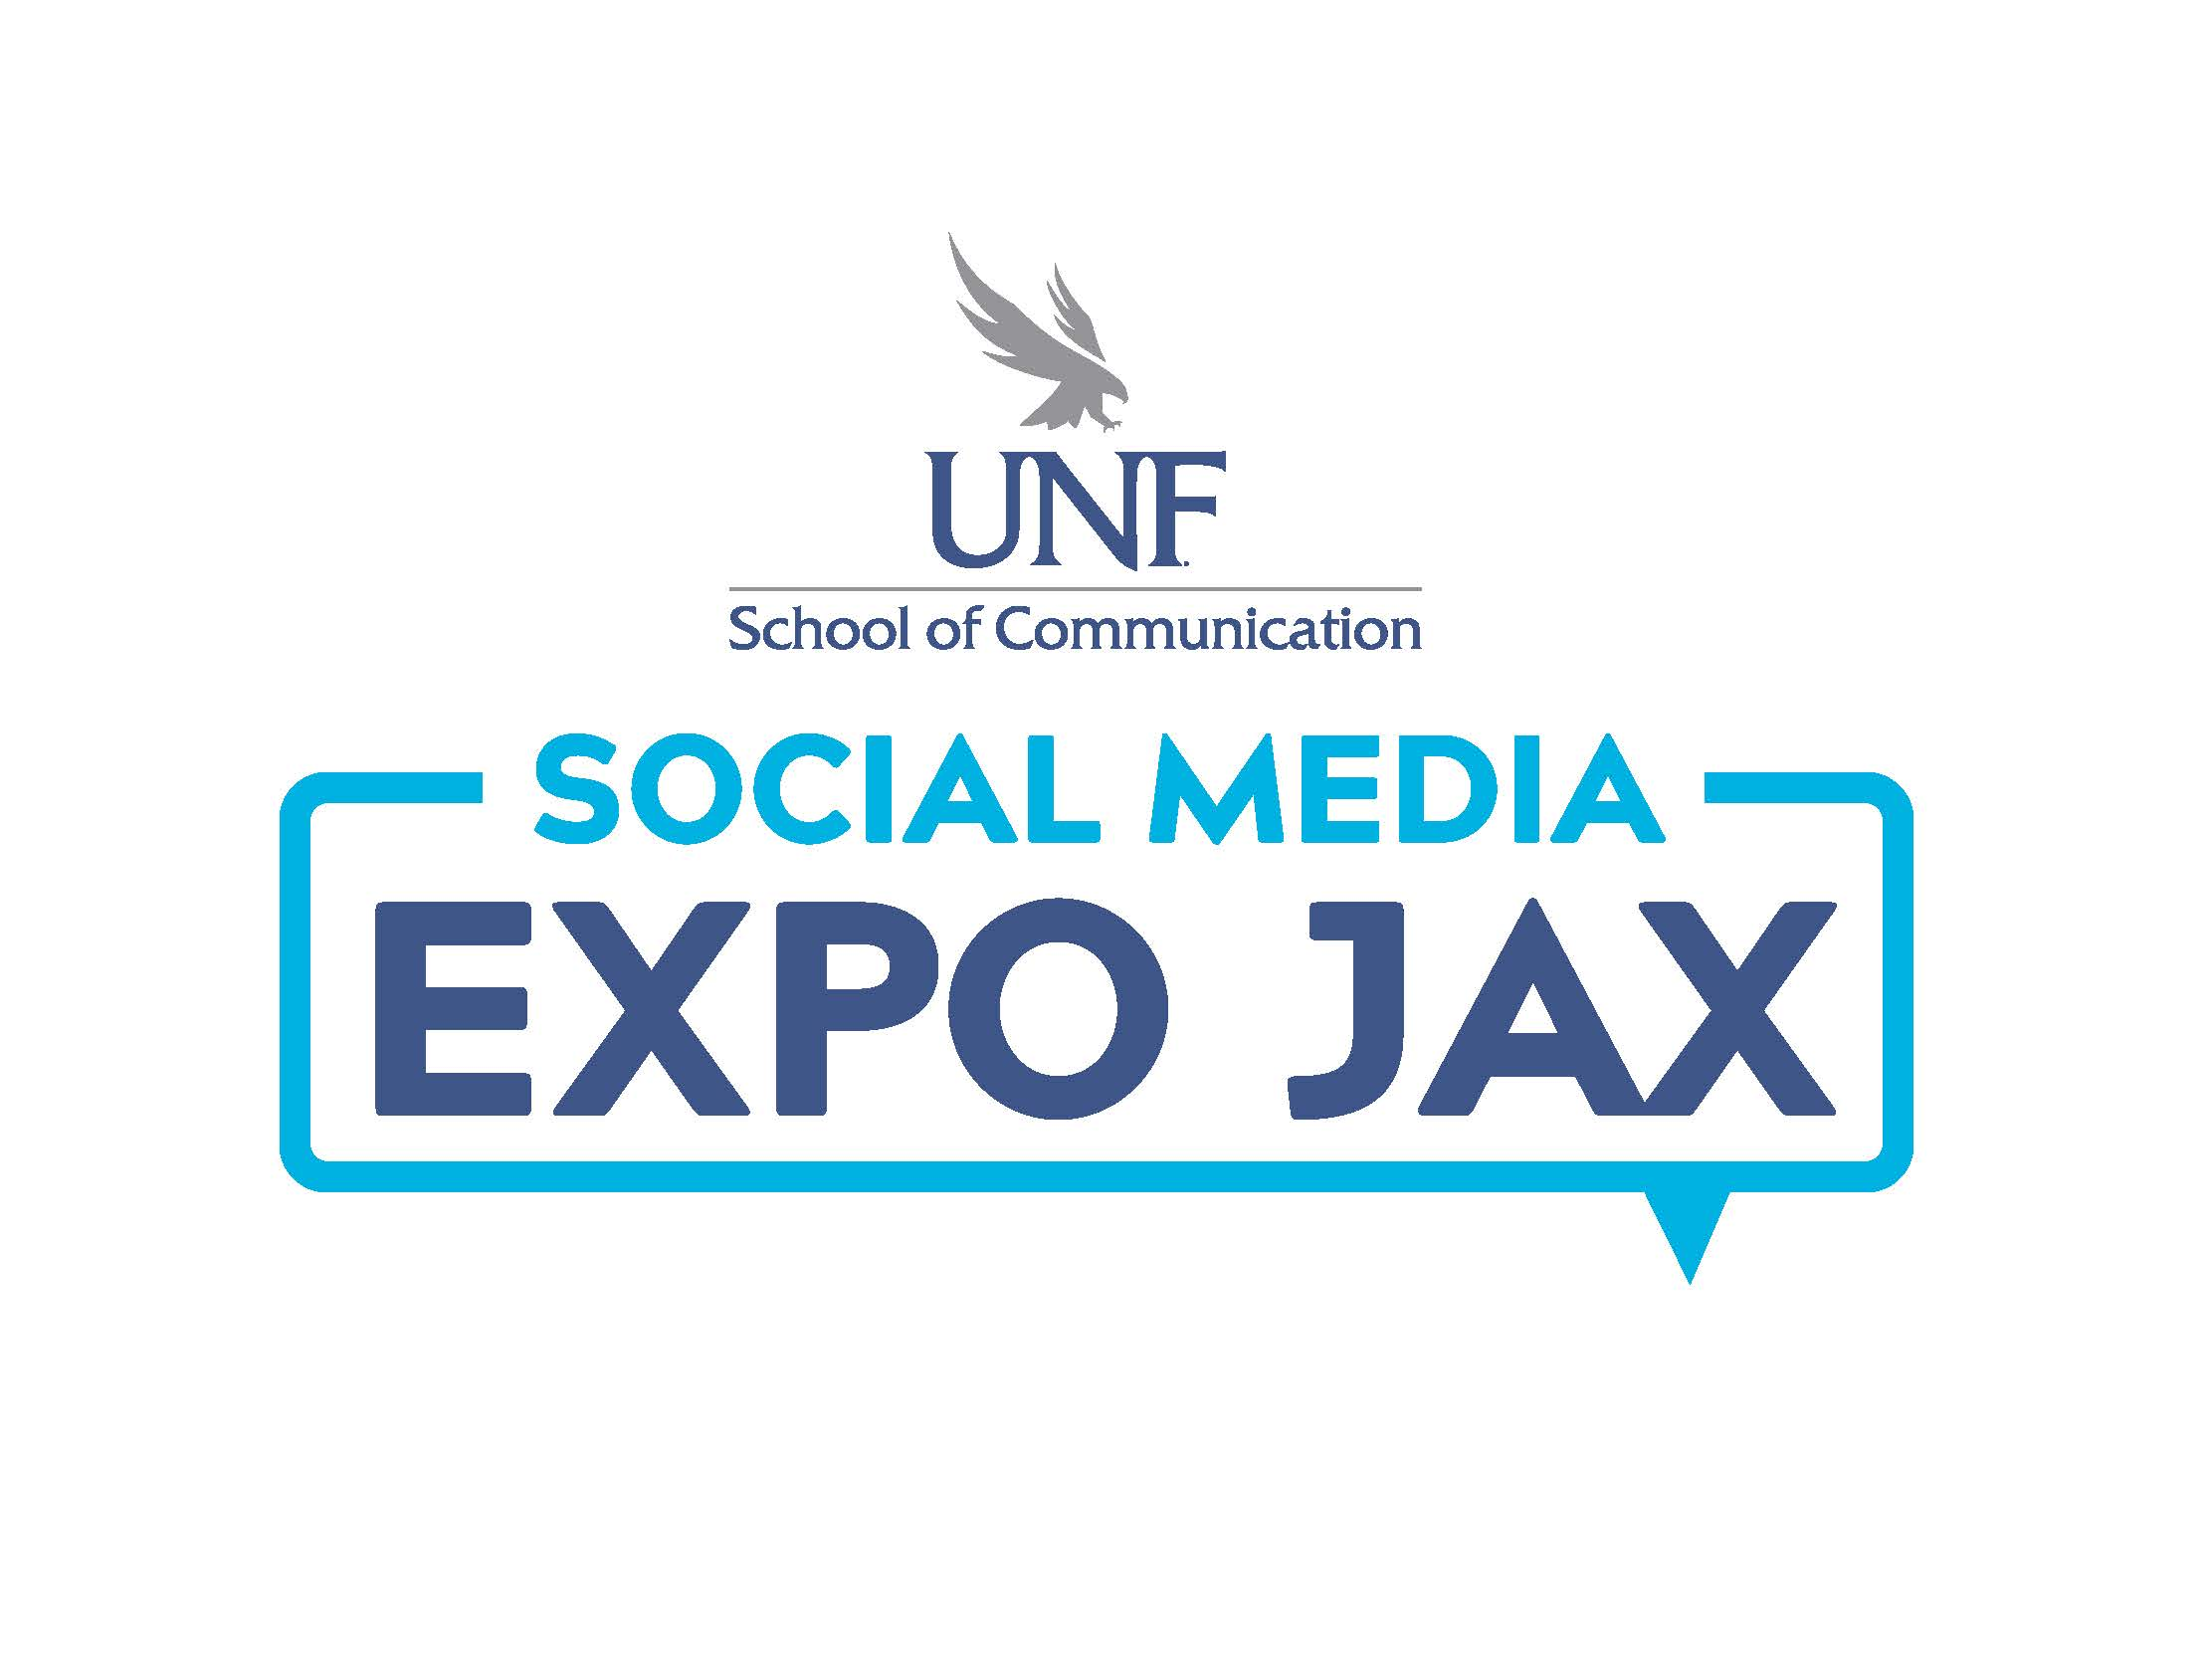 UNF school of communication - social media expo jax - logo